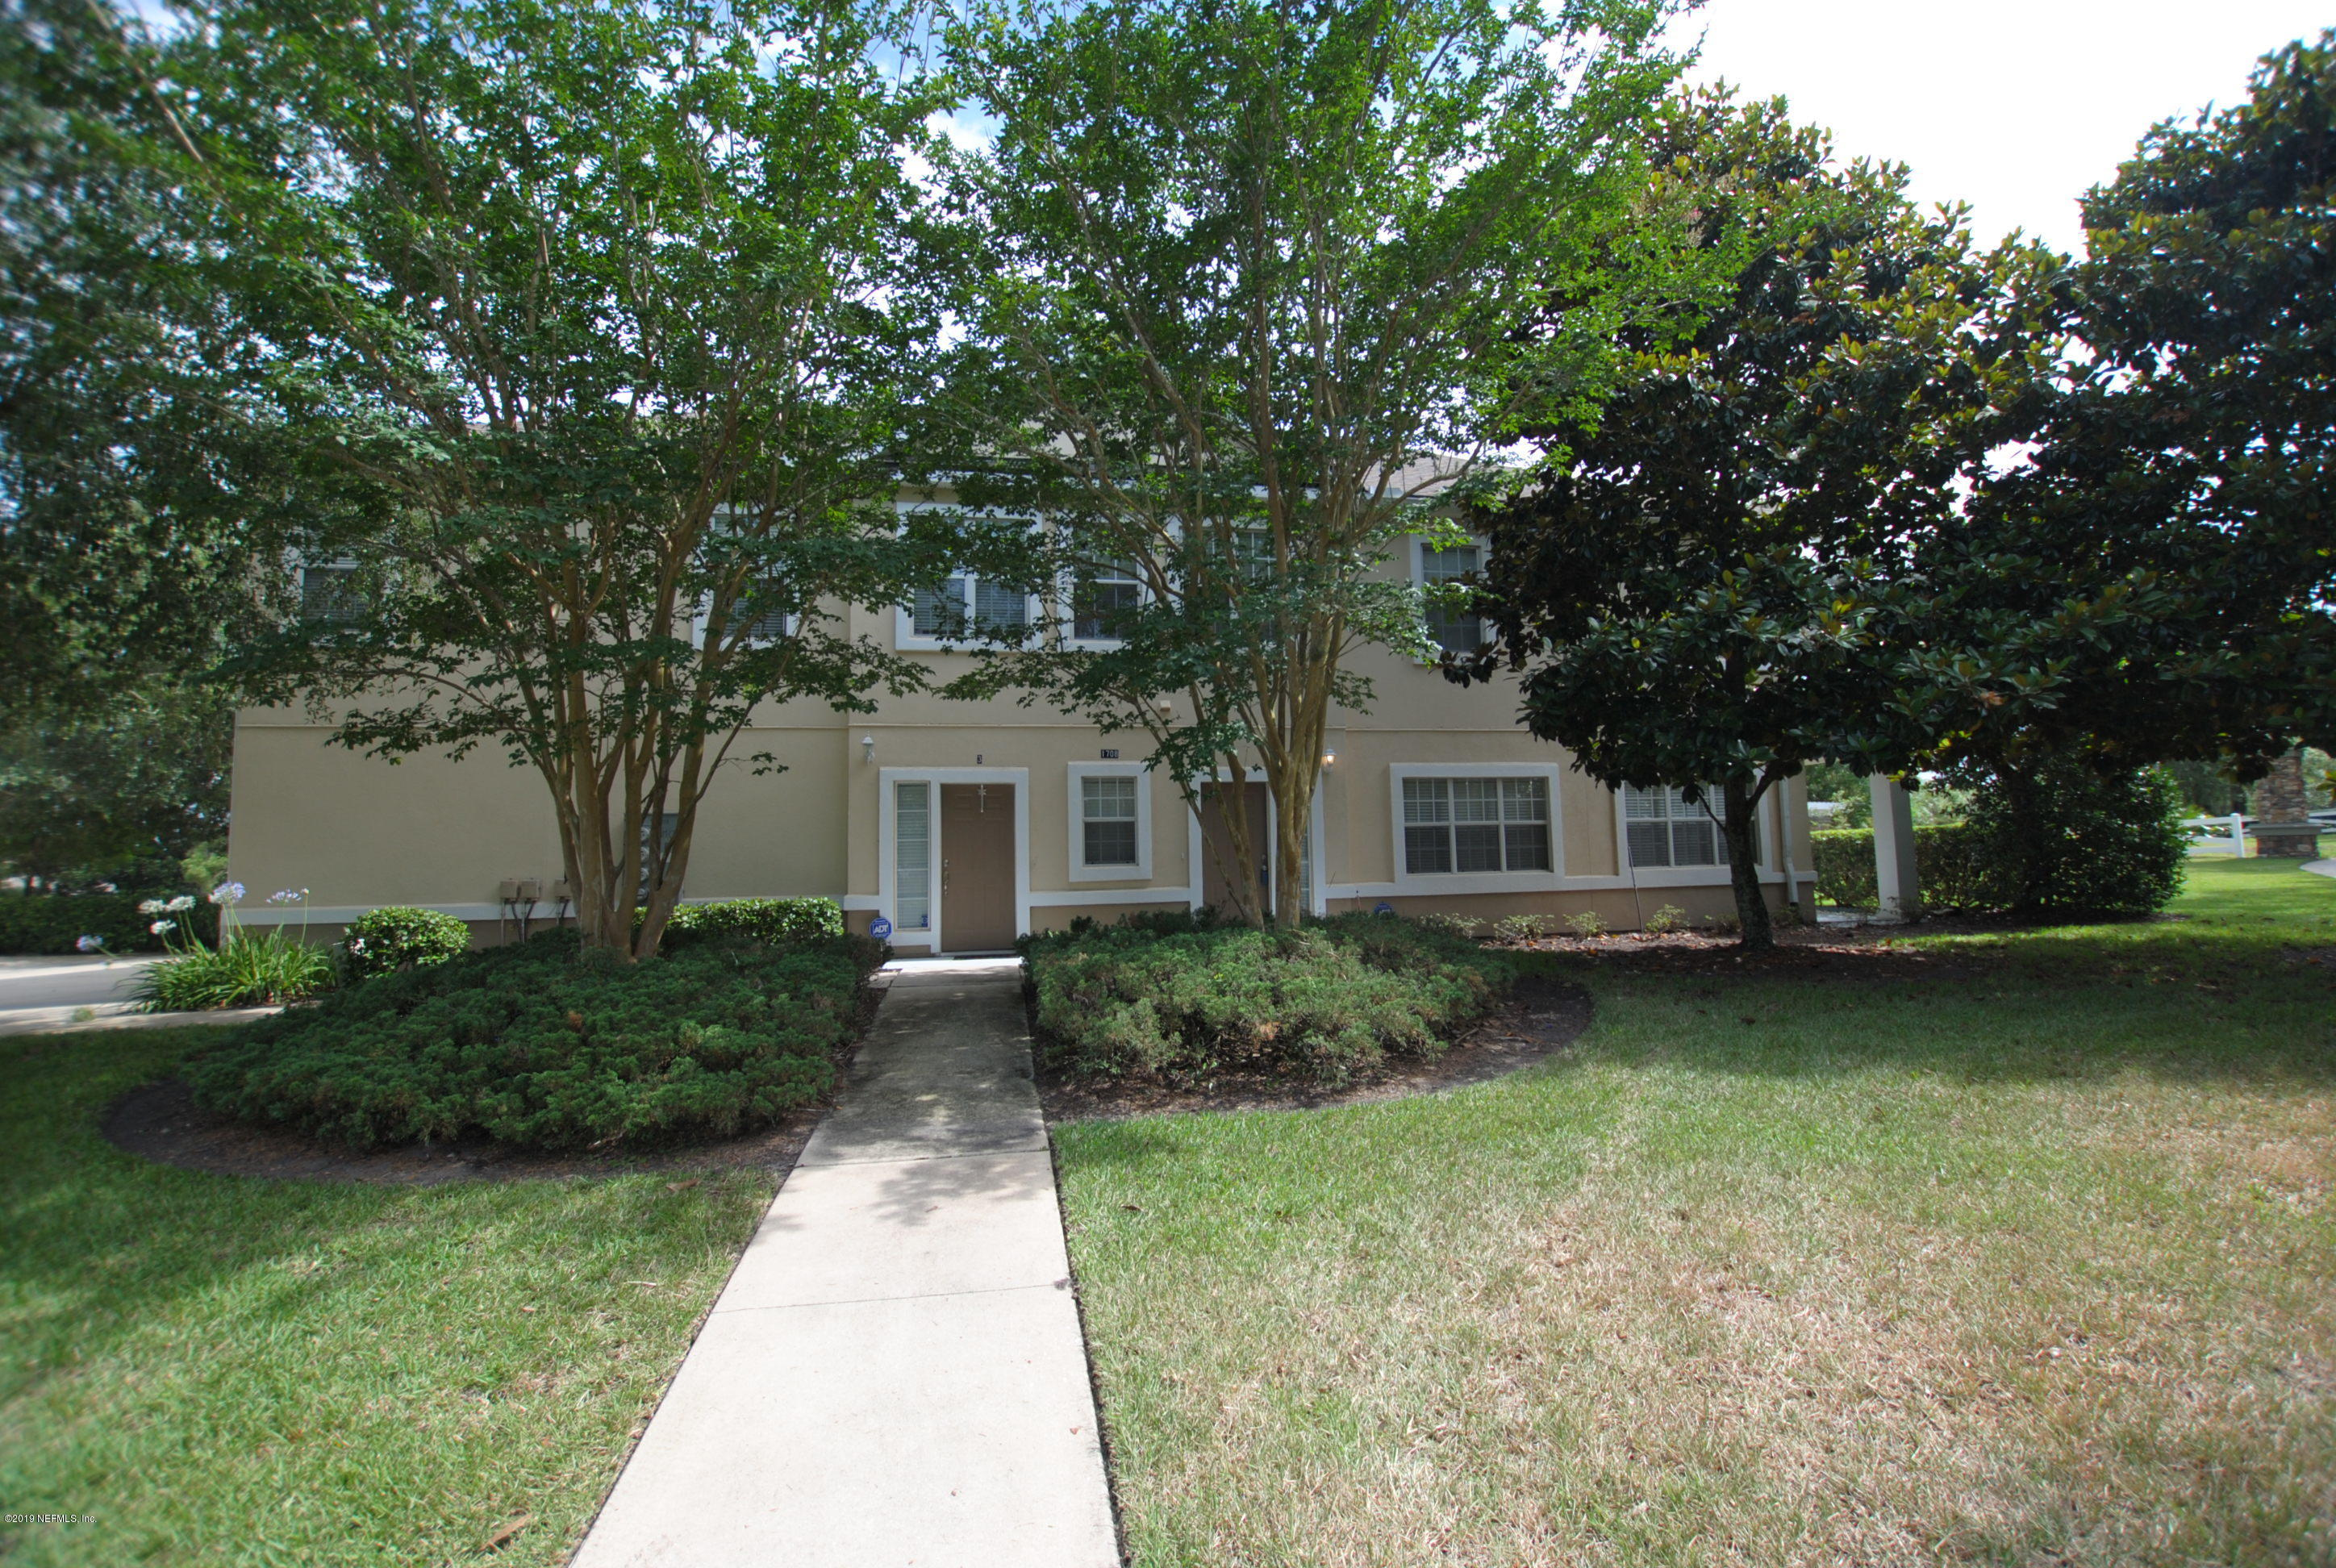 1708 FOREST LAKE, JACKSONVILLE, FLORIDA 32225, 3 Bedrooms Bedrooms, ,2 BathroomsBathrooms,Condo,For sale,FOREST LAKE,998272